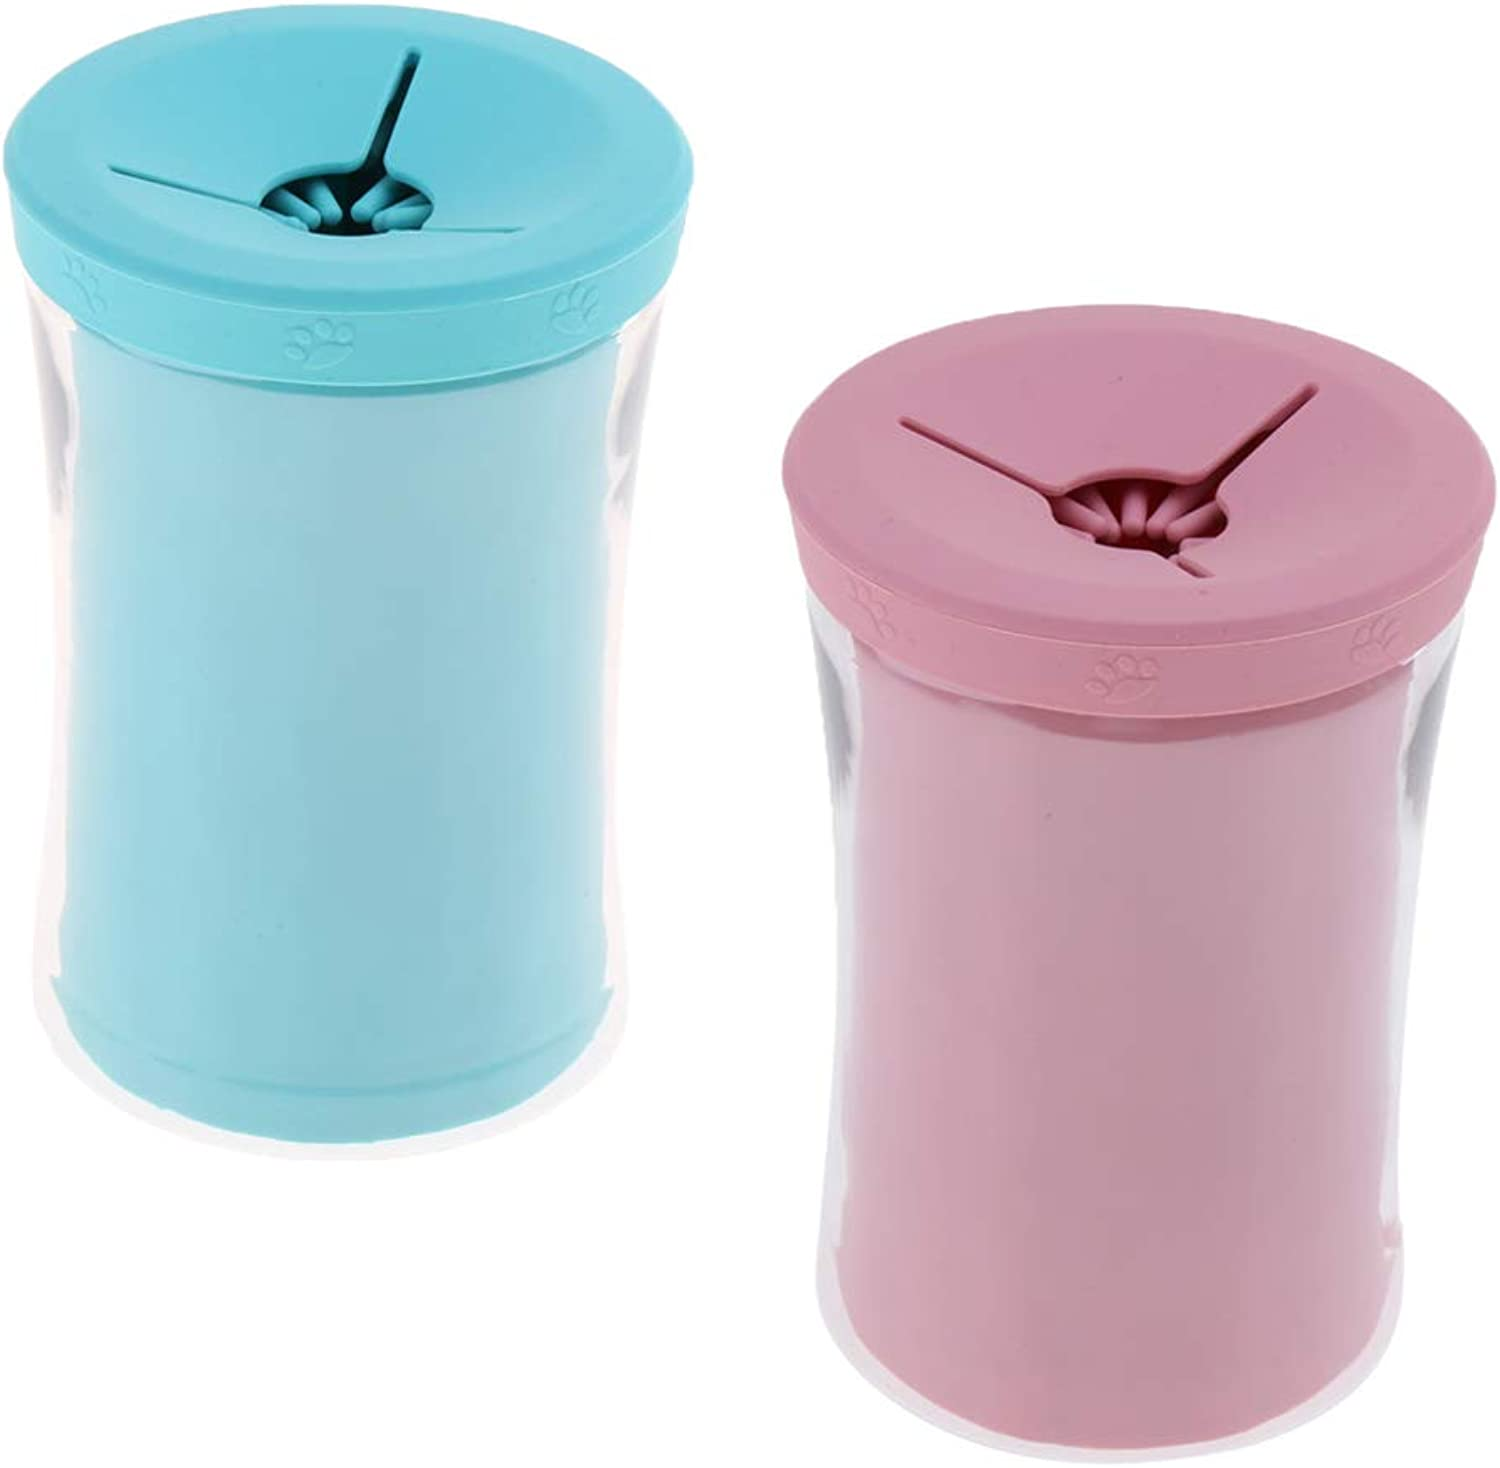 Baoblaze 2pcs Pet Foot Washer Cup Dog Cleaning Cup Foot Cup Soft and Gentle Dog Cat Grooming